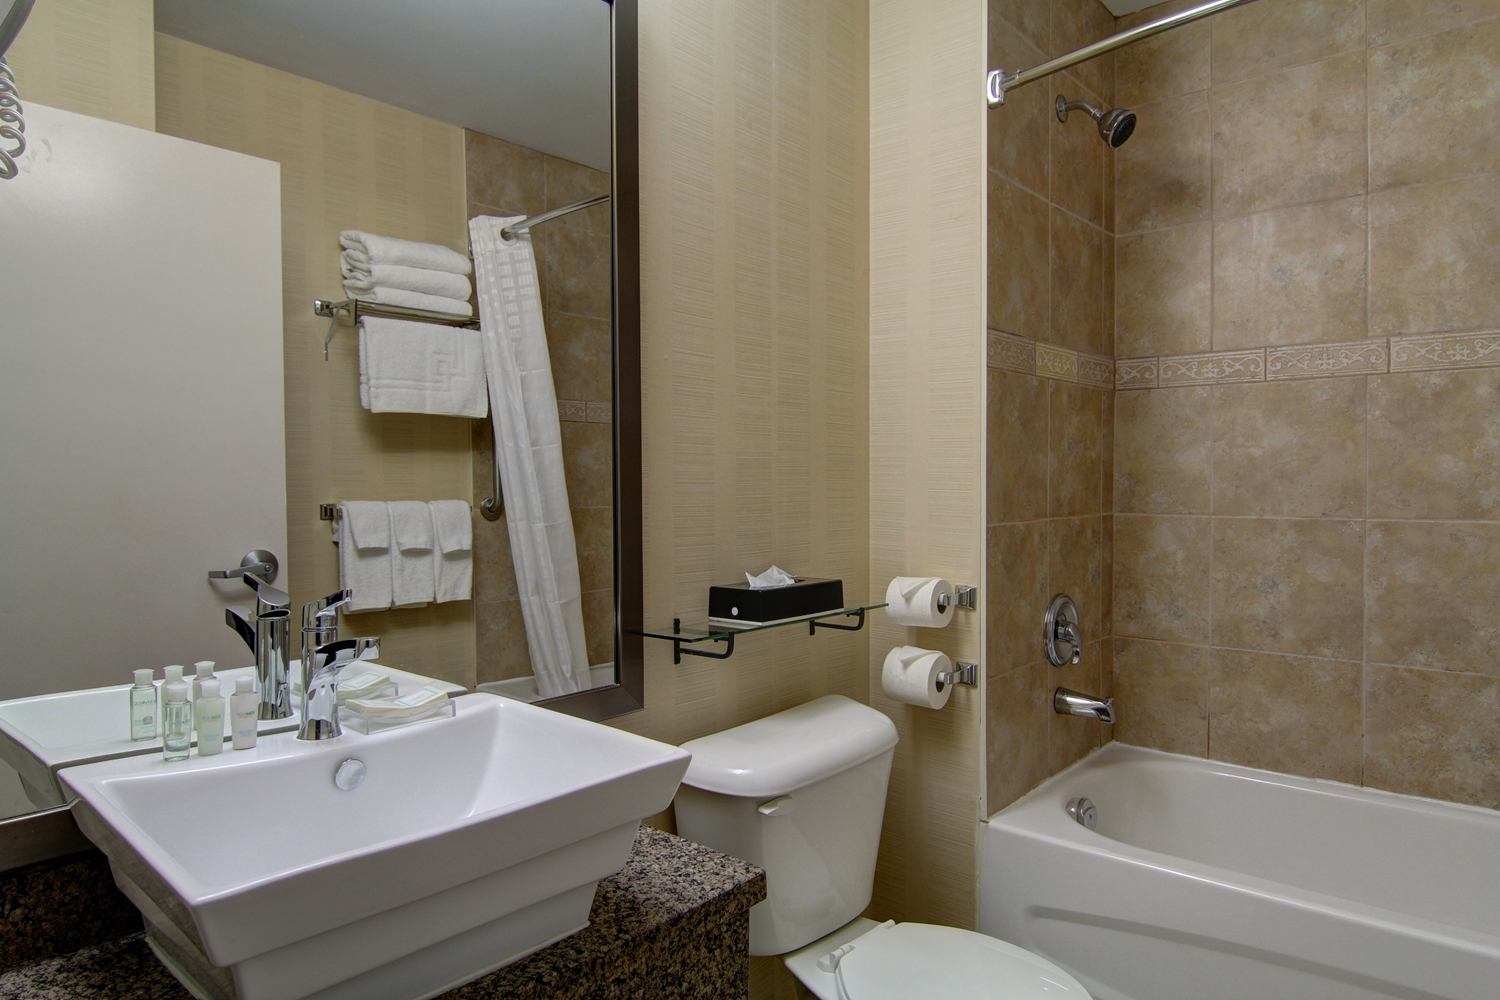 Room Best Western Plus Hotel Bowmanville